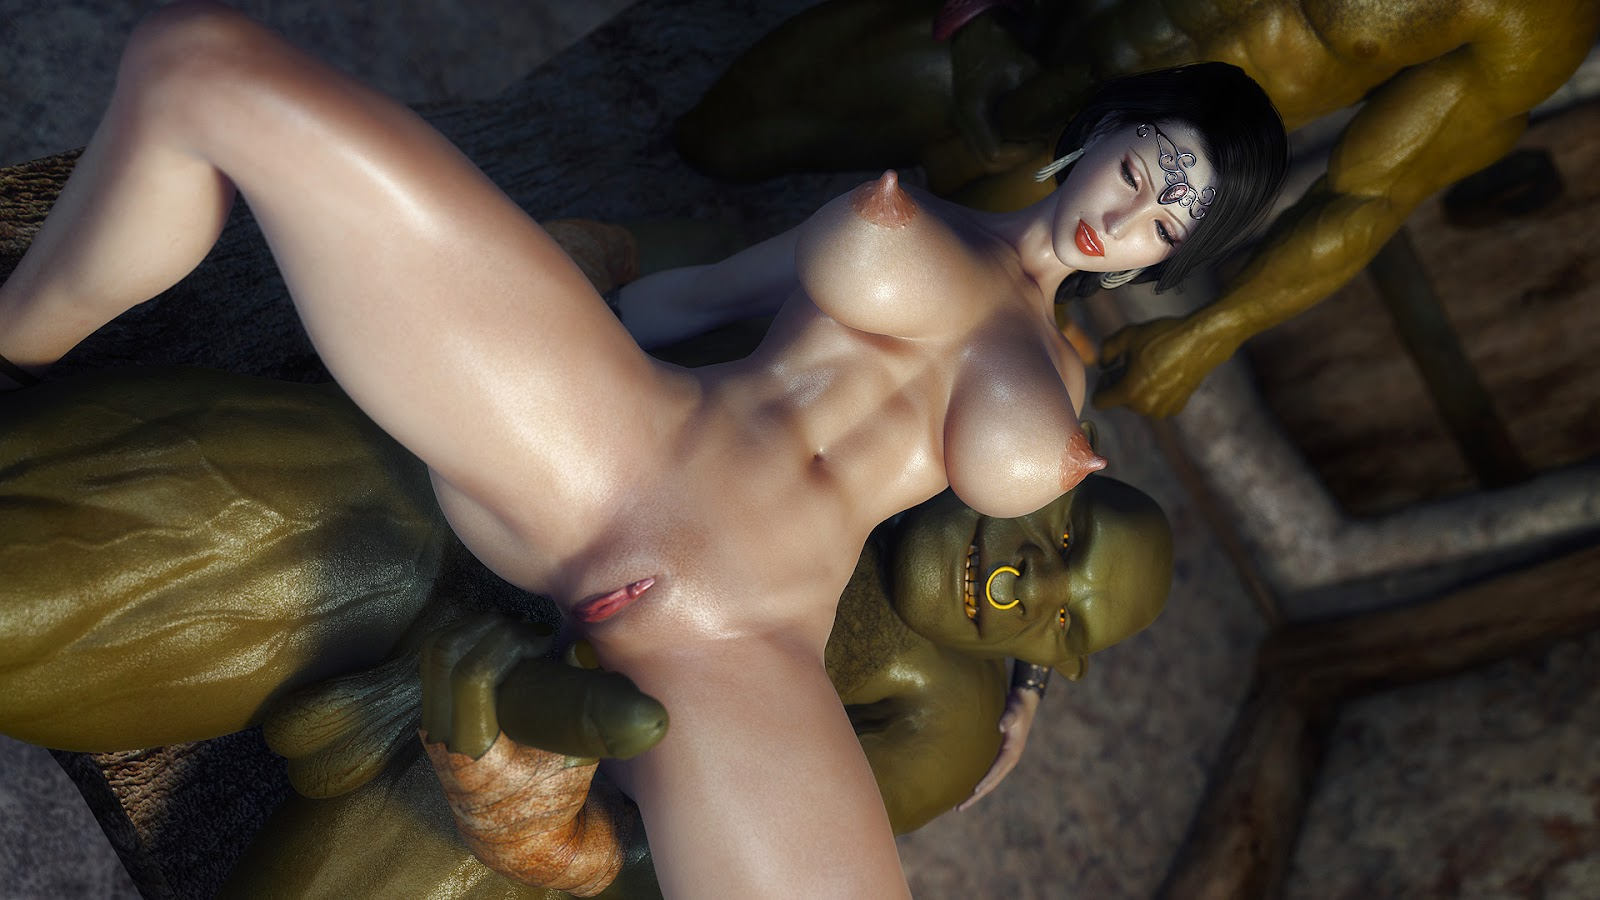 Download 3d orc hentai 3gp pron photos